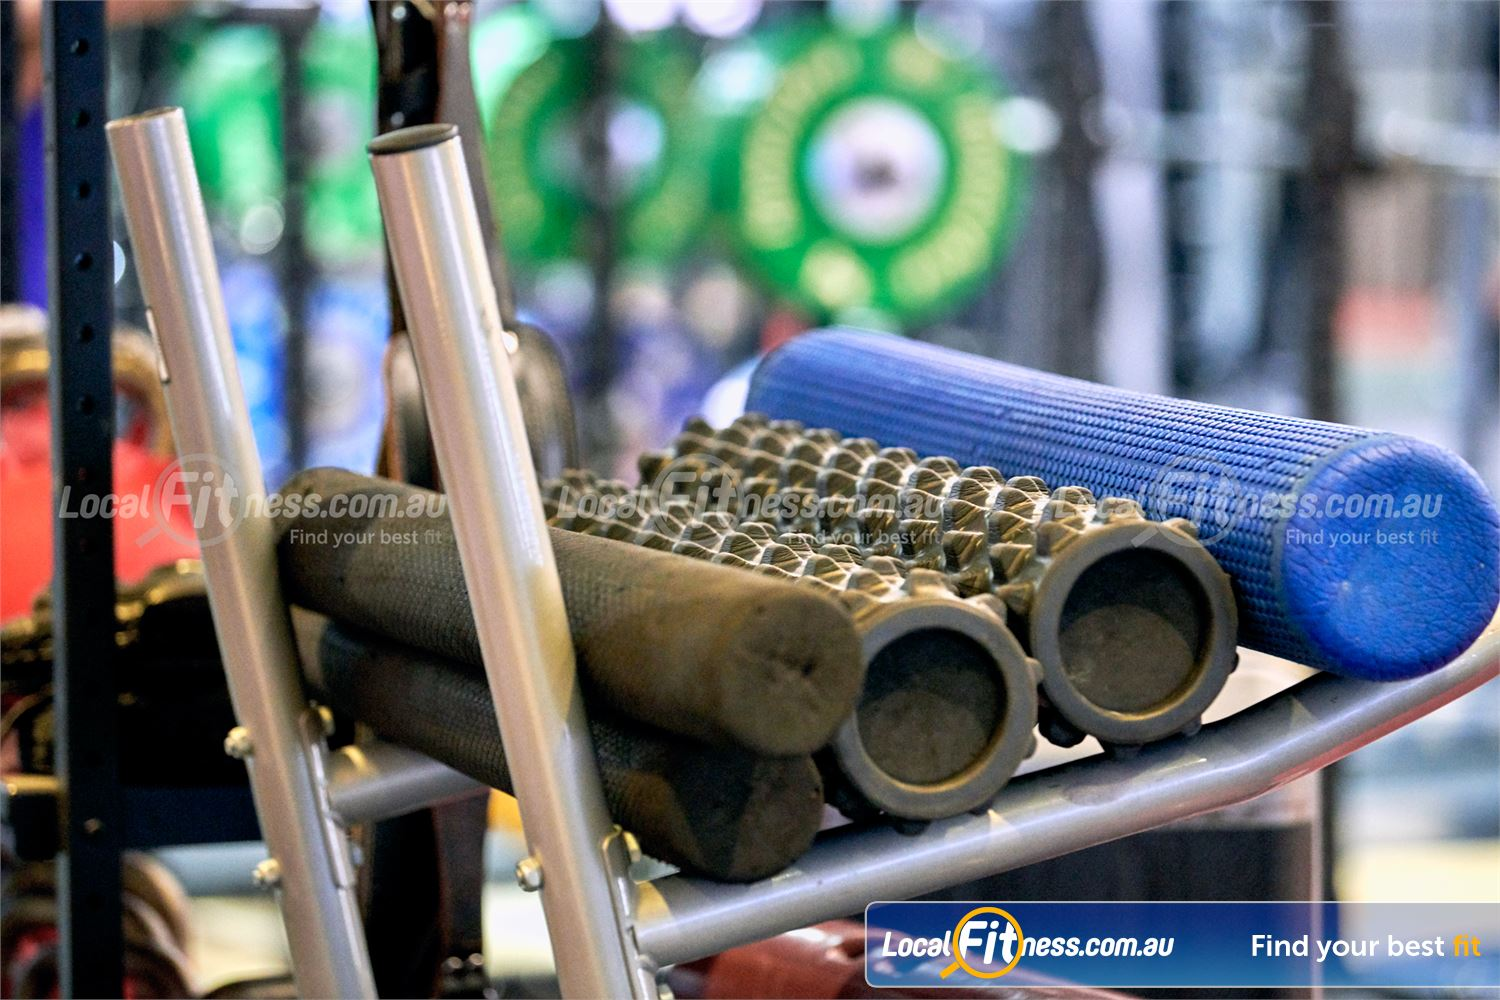 Fitness First Near Forrest Get into active recovery with foam rollers.